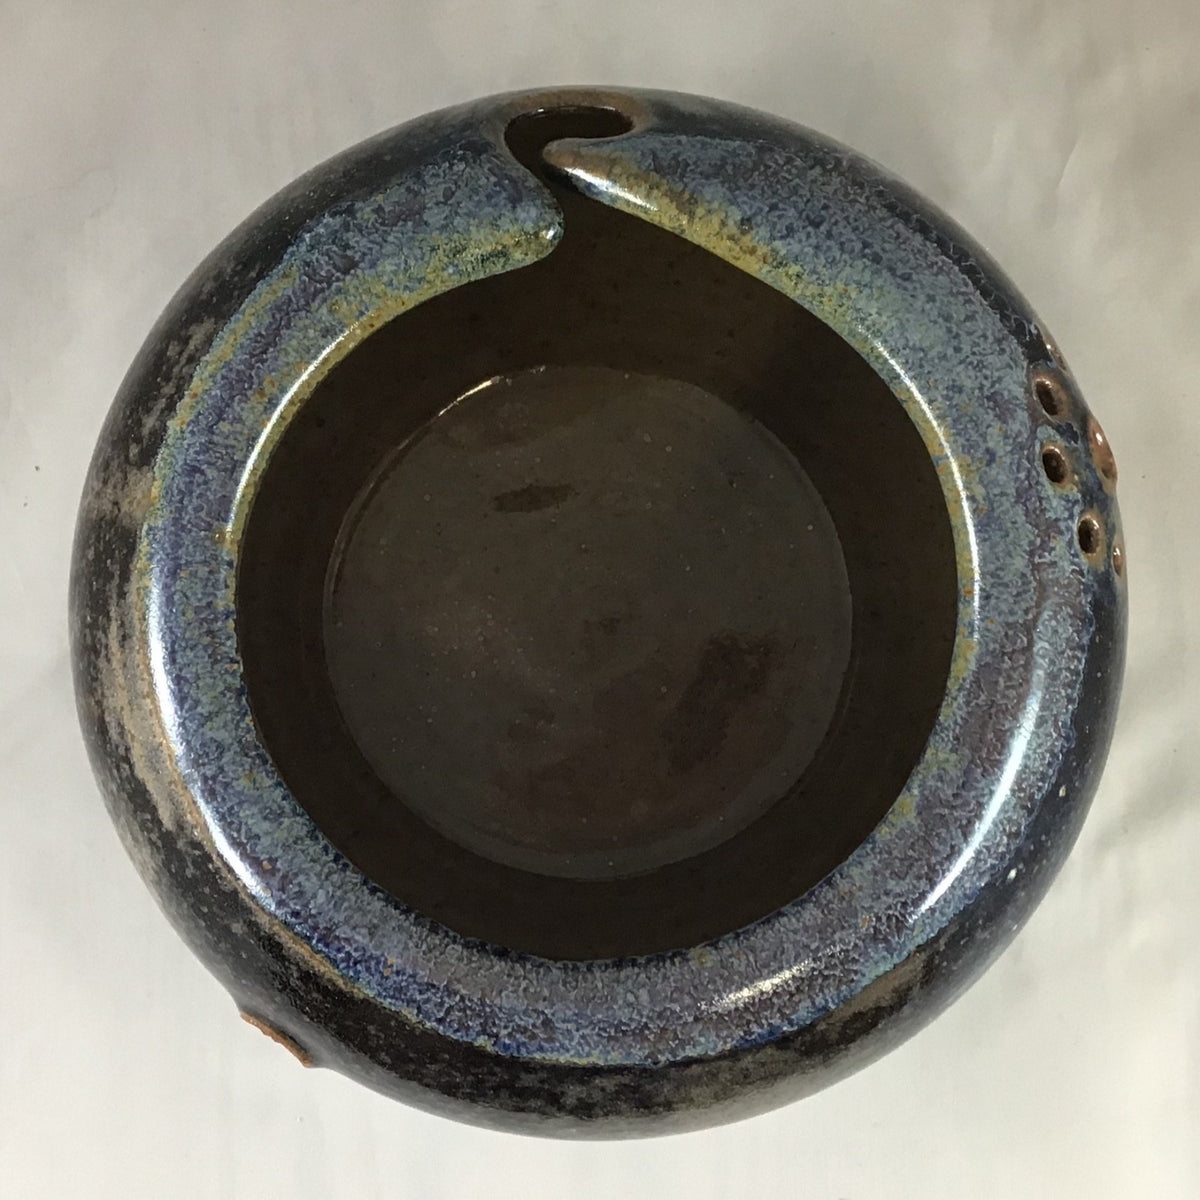 The inside of a grey stoneware yarn bowl